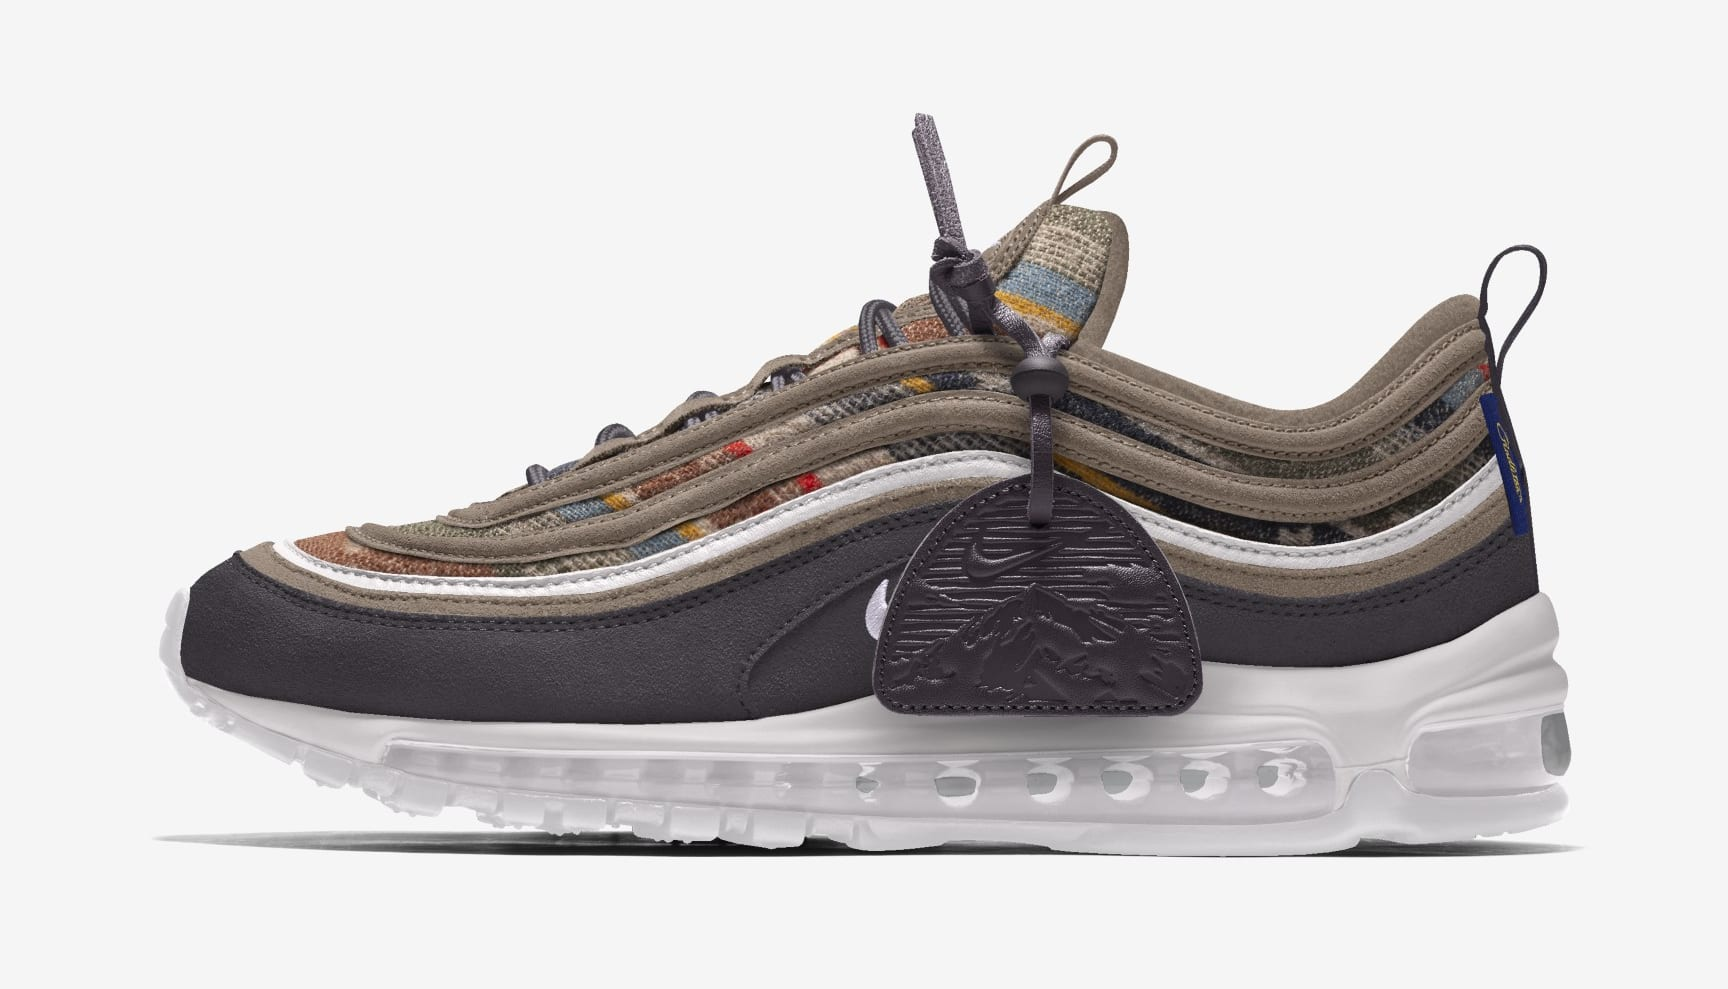 Nike Pendleton Air Max 97 By You Lateral